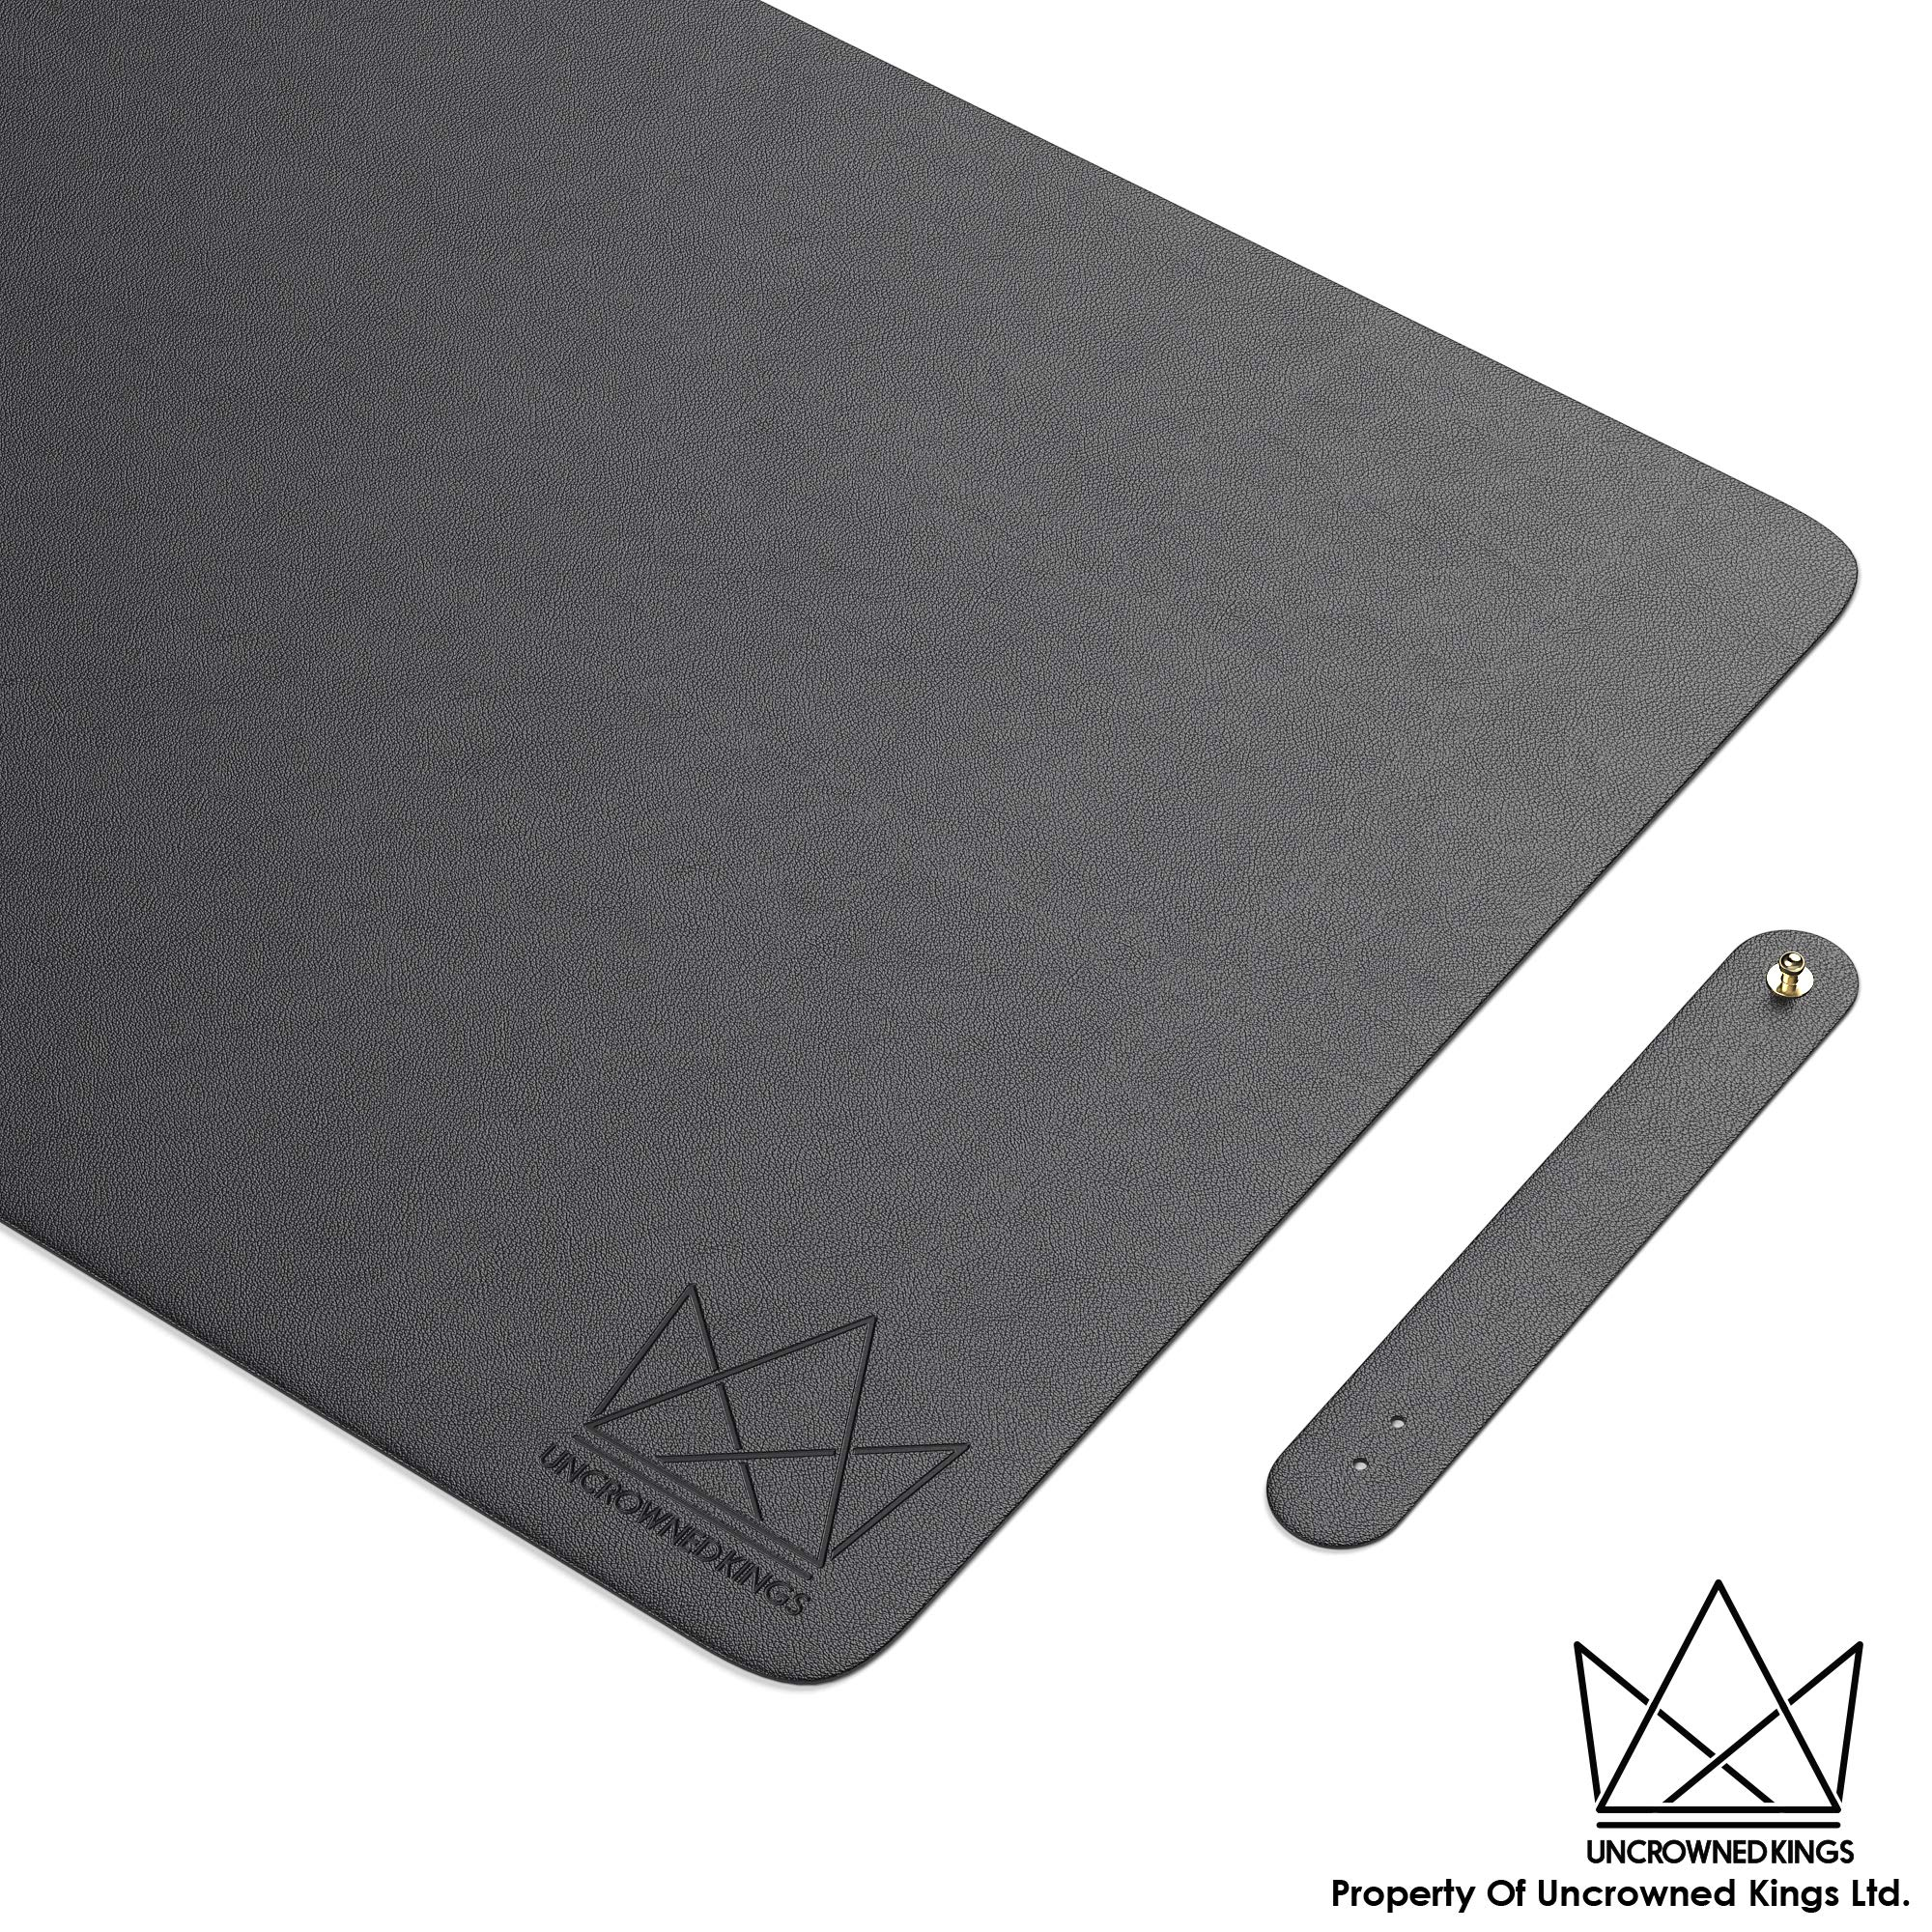 Uncrowned Kings Desk Pad - 31.5 X 15.7 Inches Premium Home Office Desk Mat Protector for Wooden/Glass Desktops - Black Vegan Leather - Waterproof - Extended Mouse Pad-Smooth for Writing – Desk Blotter